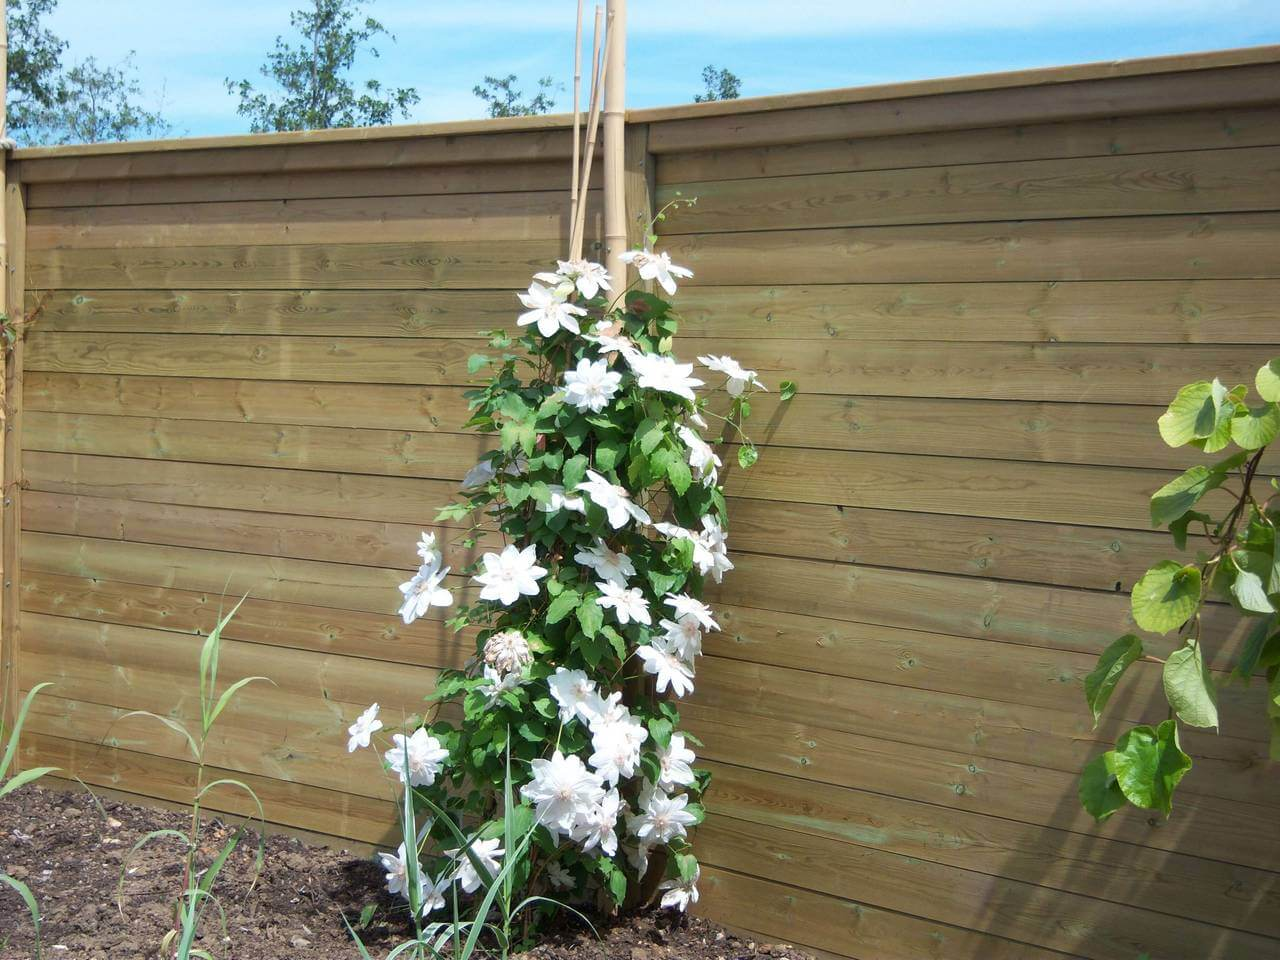 Acoustic Fencing in a garden